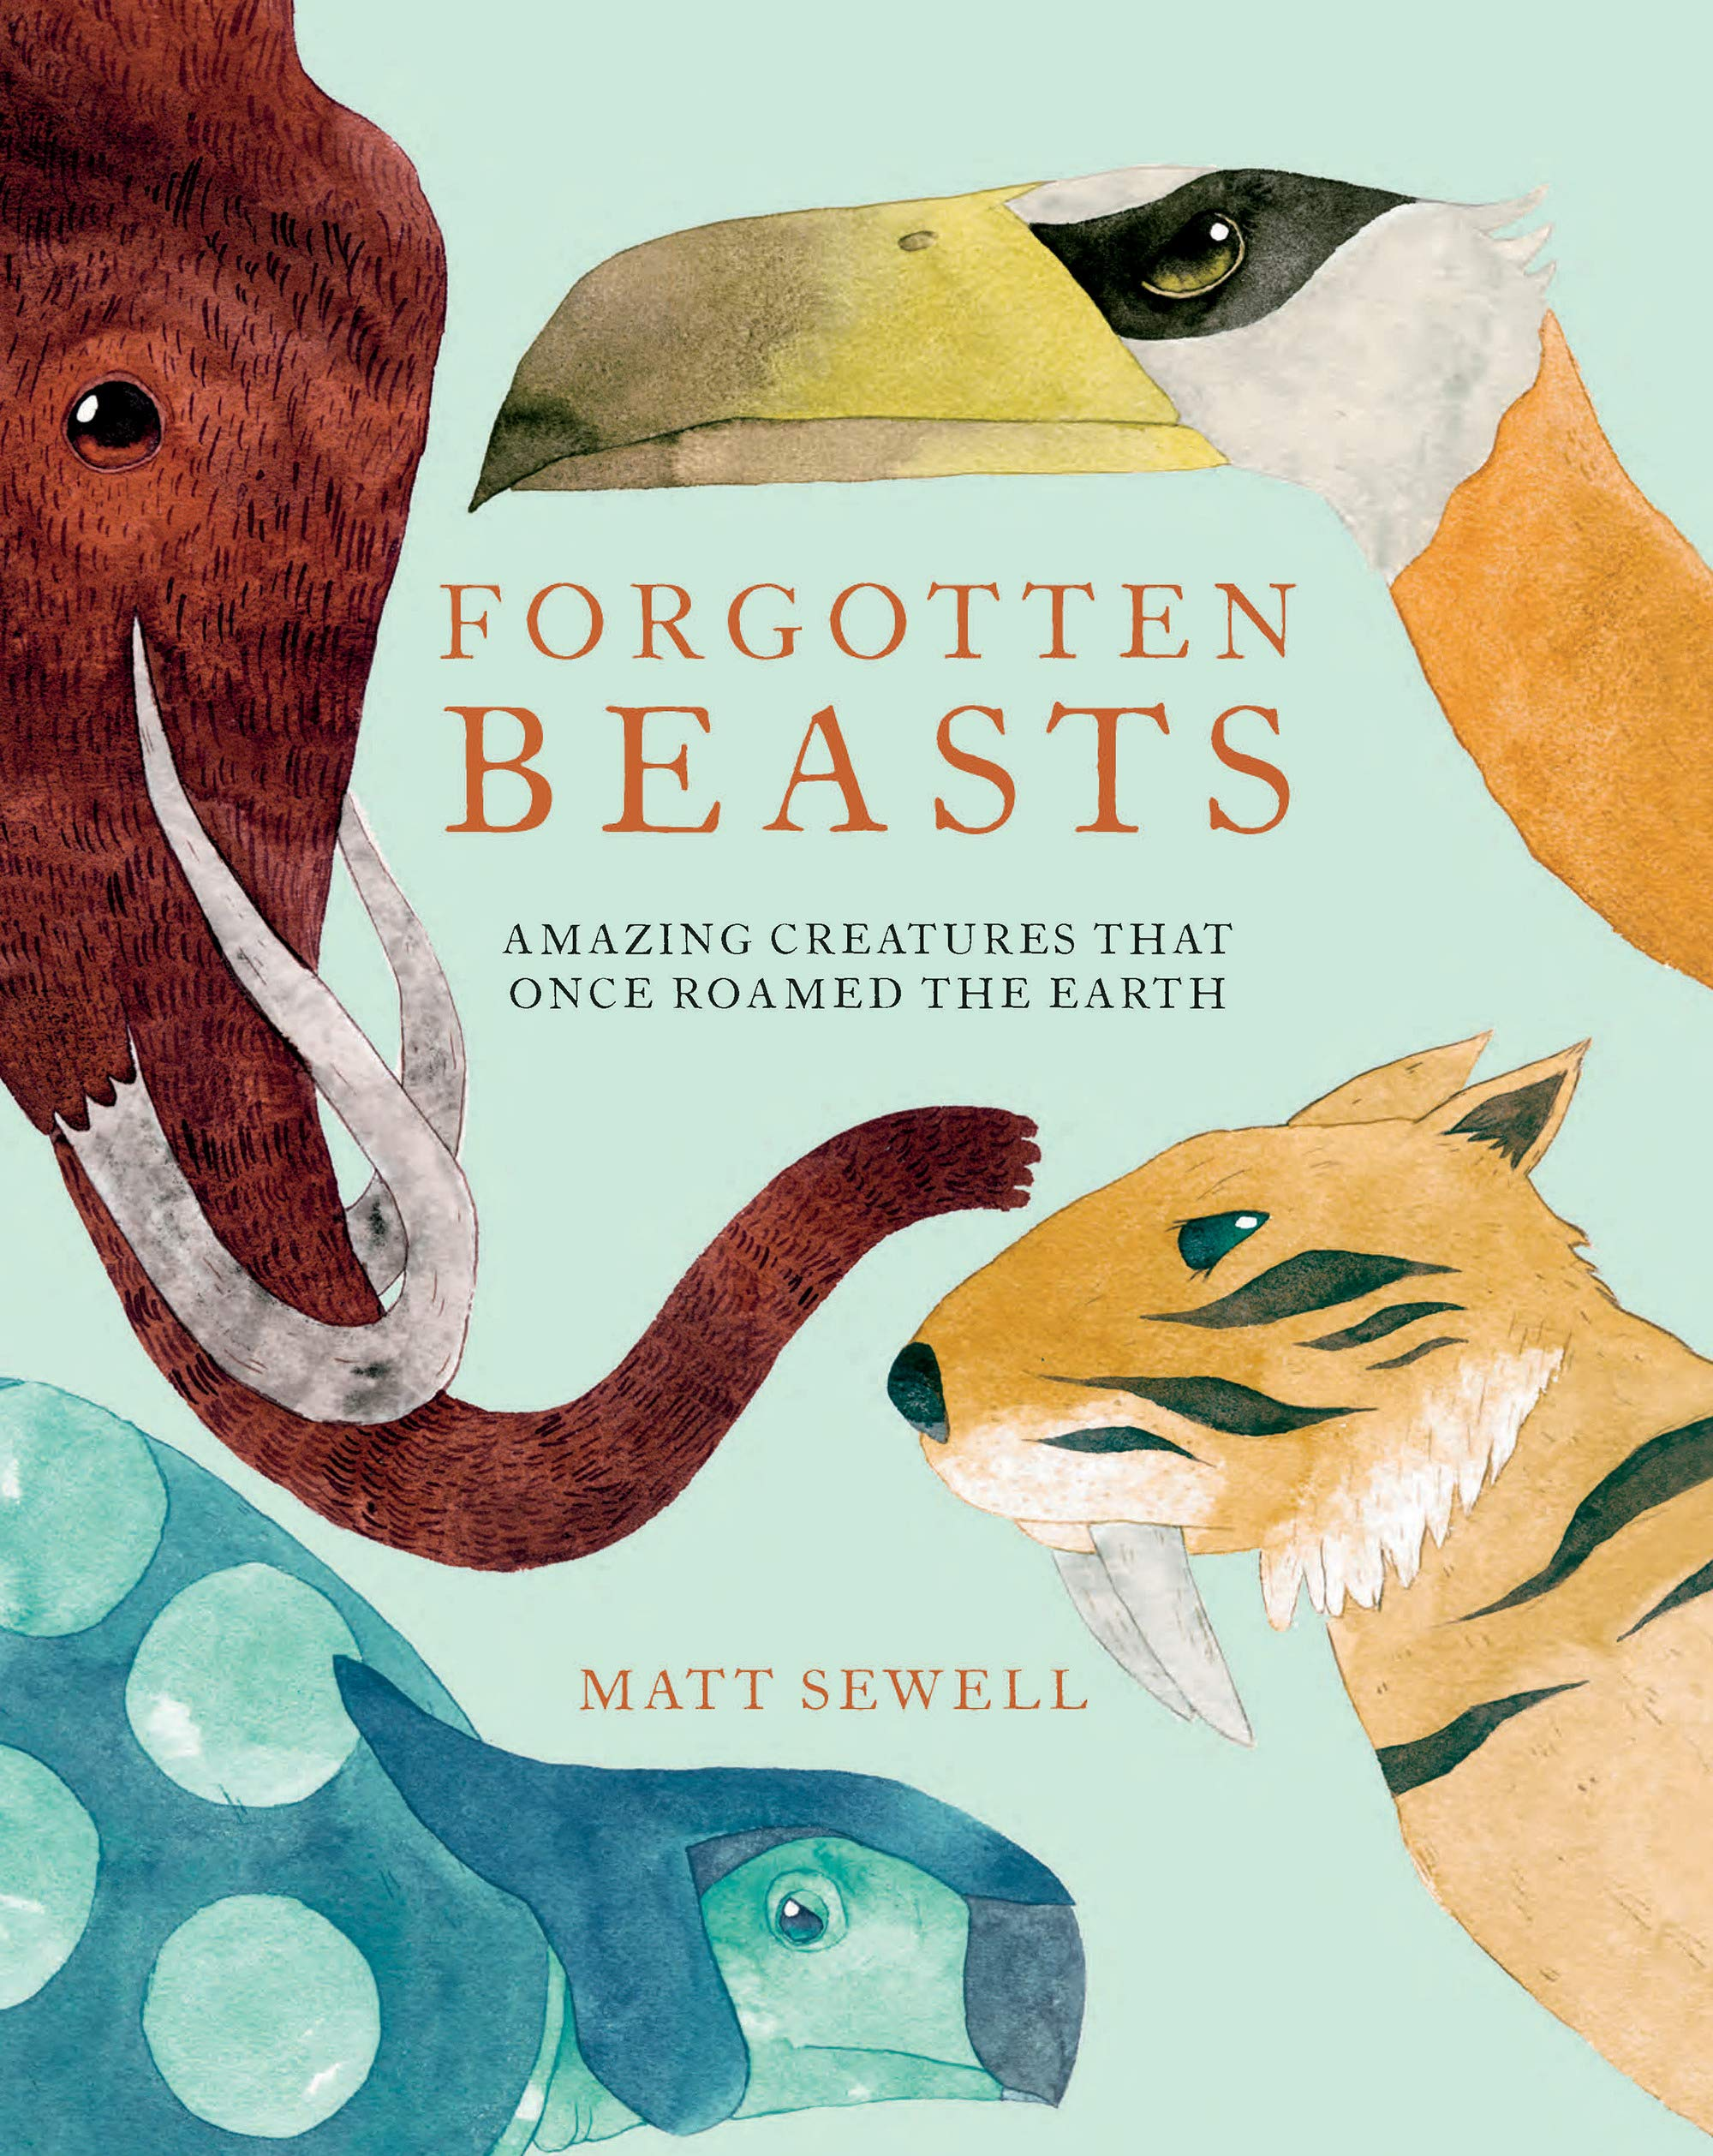 Forgotten Beasts: Amazing creatures that once roamed the Earth